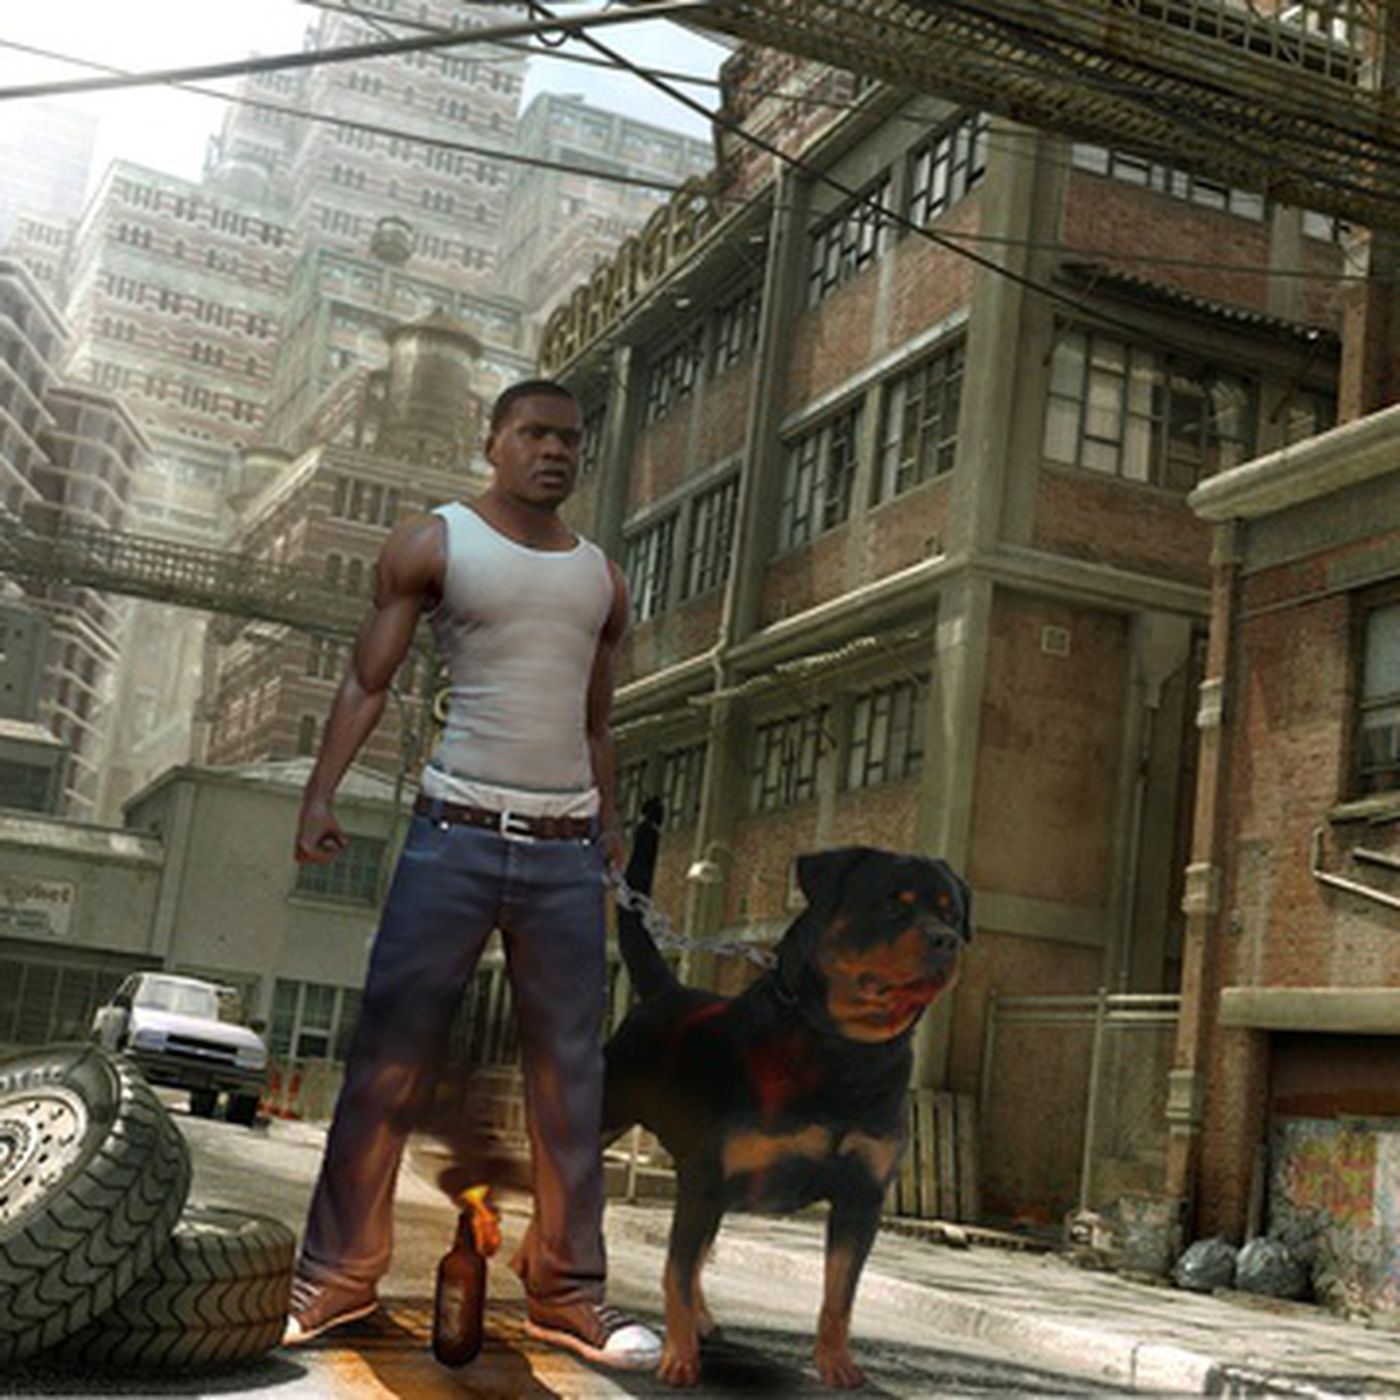 Train Franklin's mutt with Grand Theft Auto 5 app iFruit